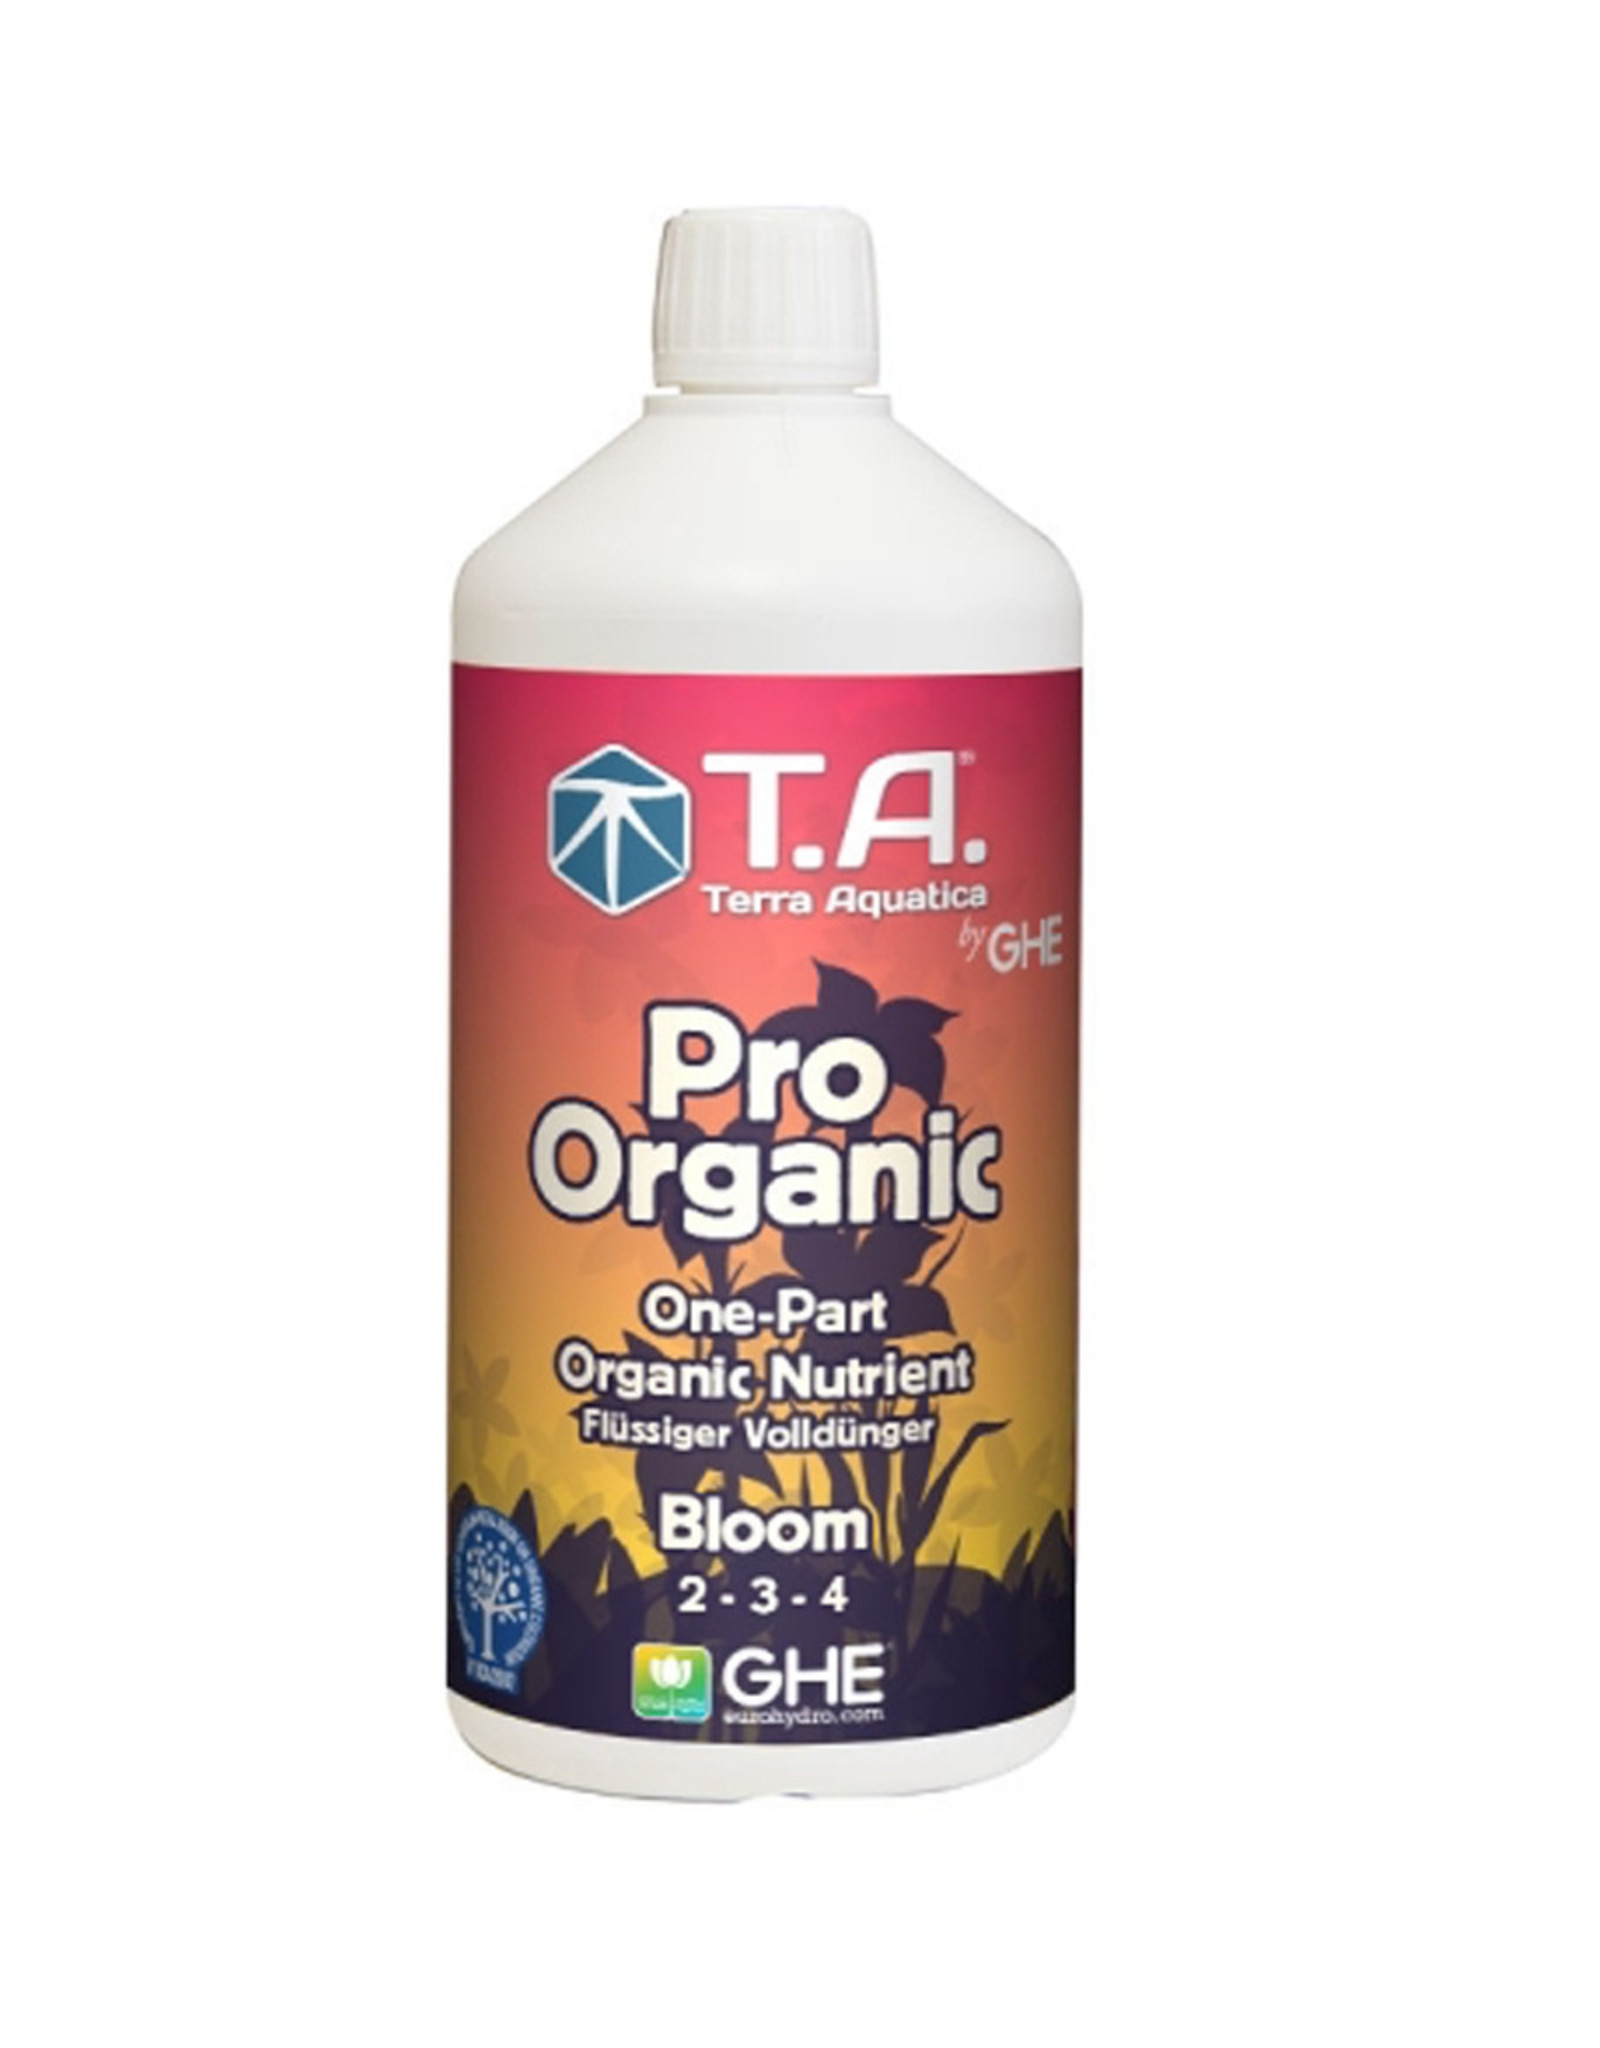 T.A. (GHE) T.A. PRO ORGANIC BLOOM (GO THRIVE)